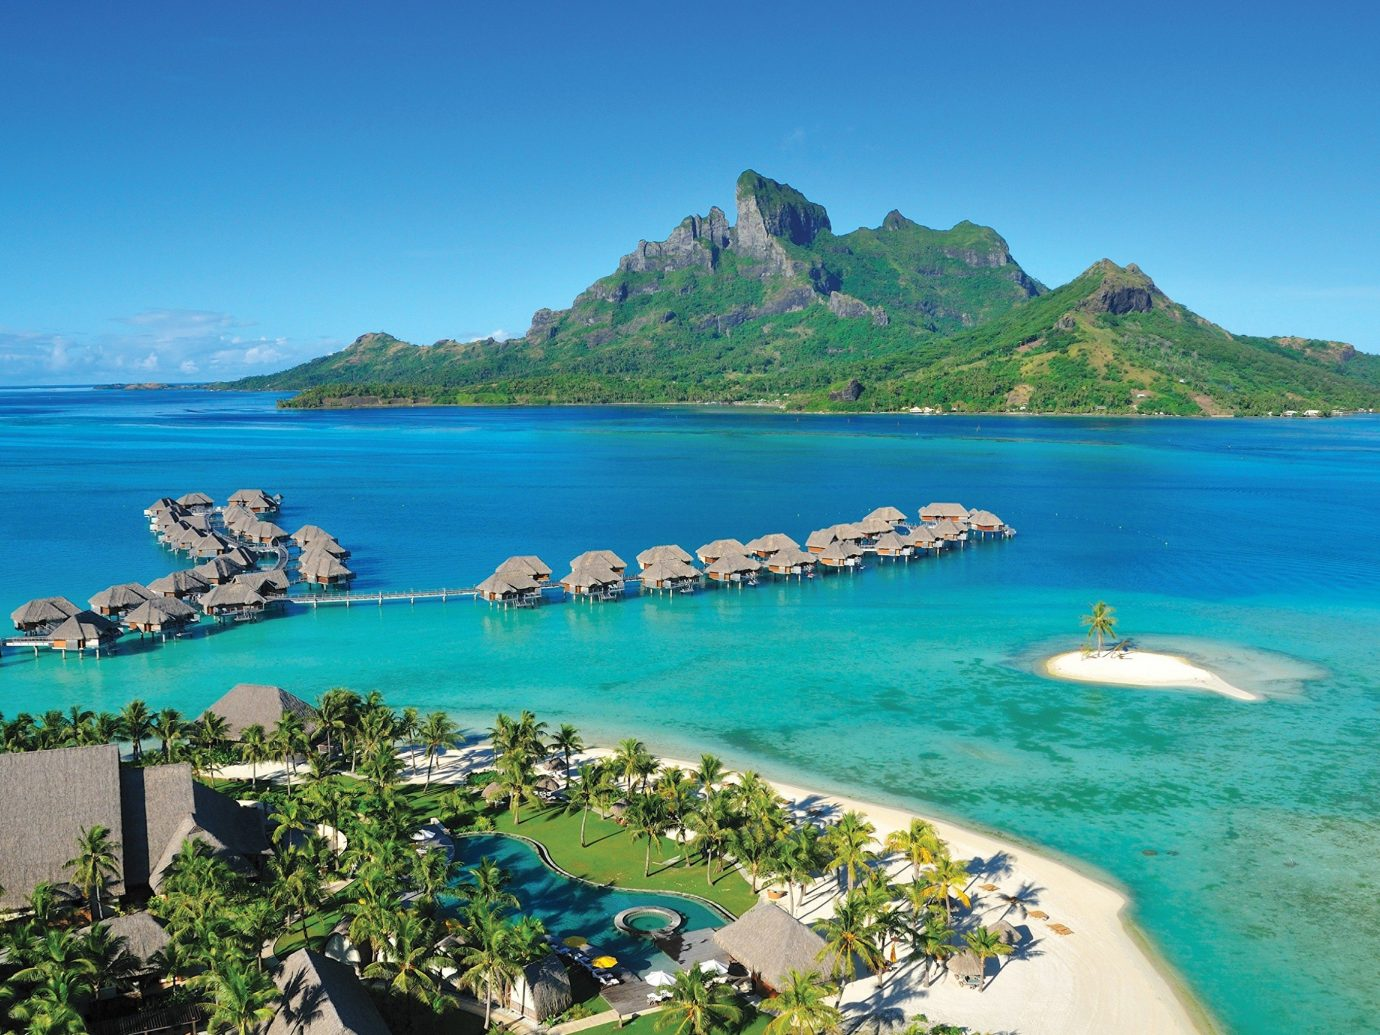 Hotels Offbeat water sky outdoor mountain Nature landform geographical feature promontory caribbean Lake Sea Coast vacation bay islet archipelago Island Lagoon Resort Beach cape cove resort town reef shore swimming